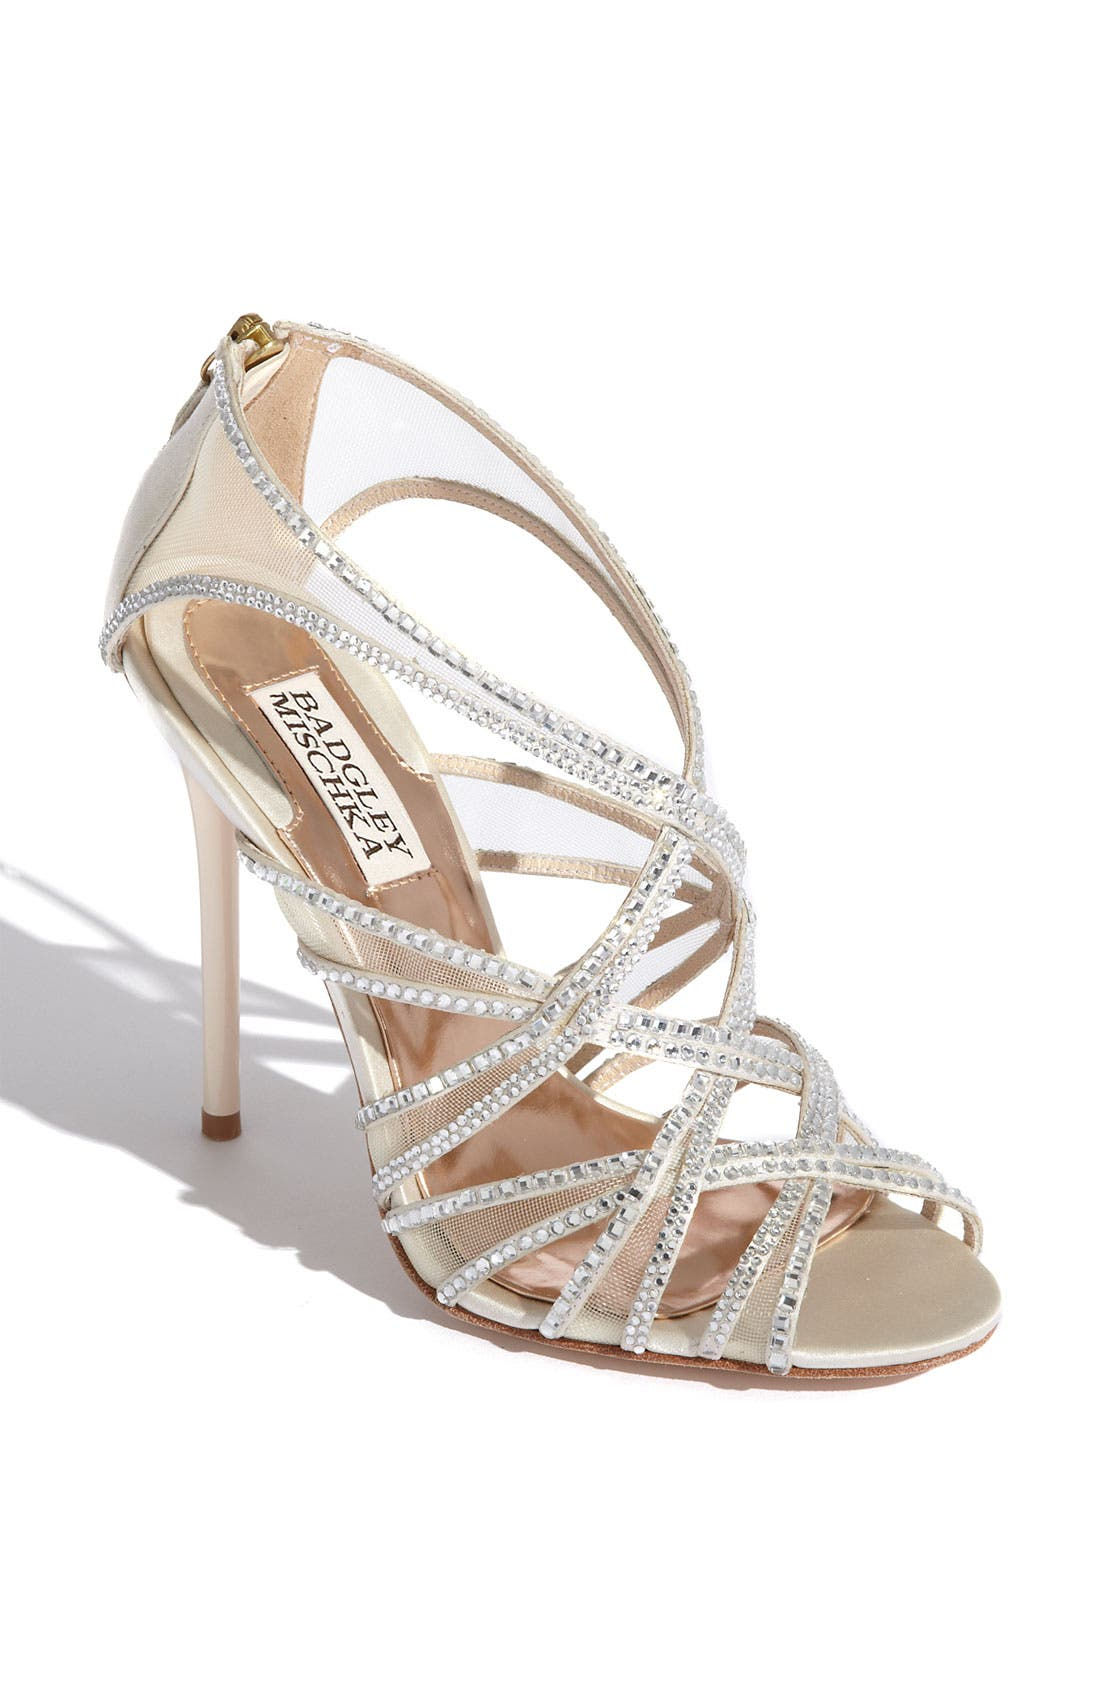 Main Image - Badgley Mischka 'Gloria' Sandal